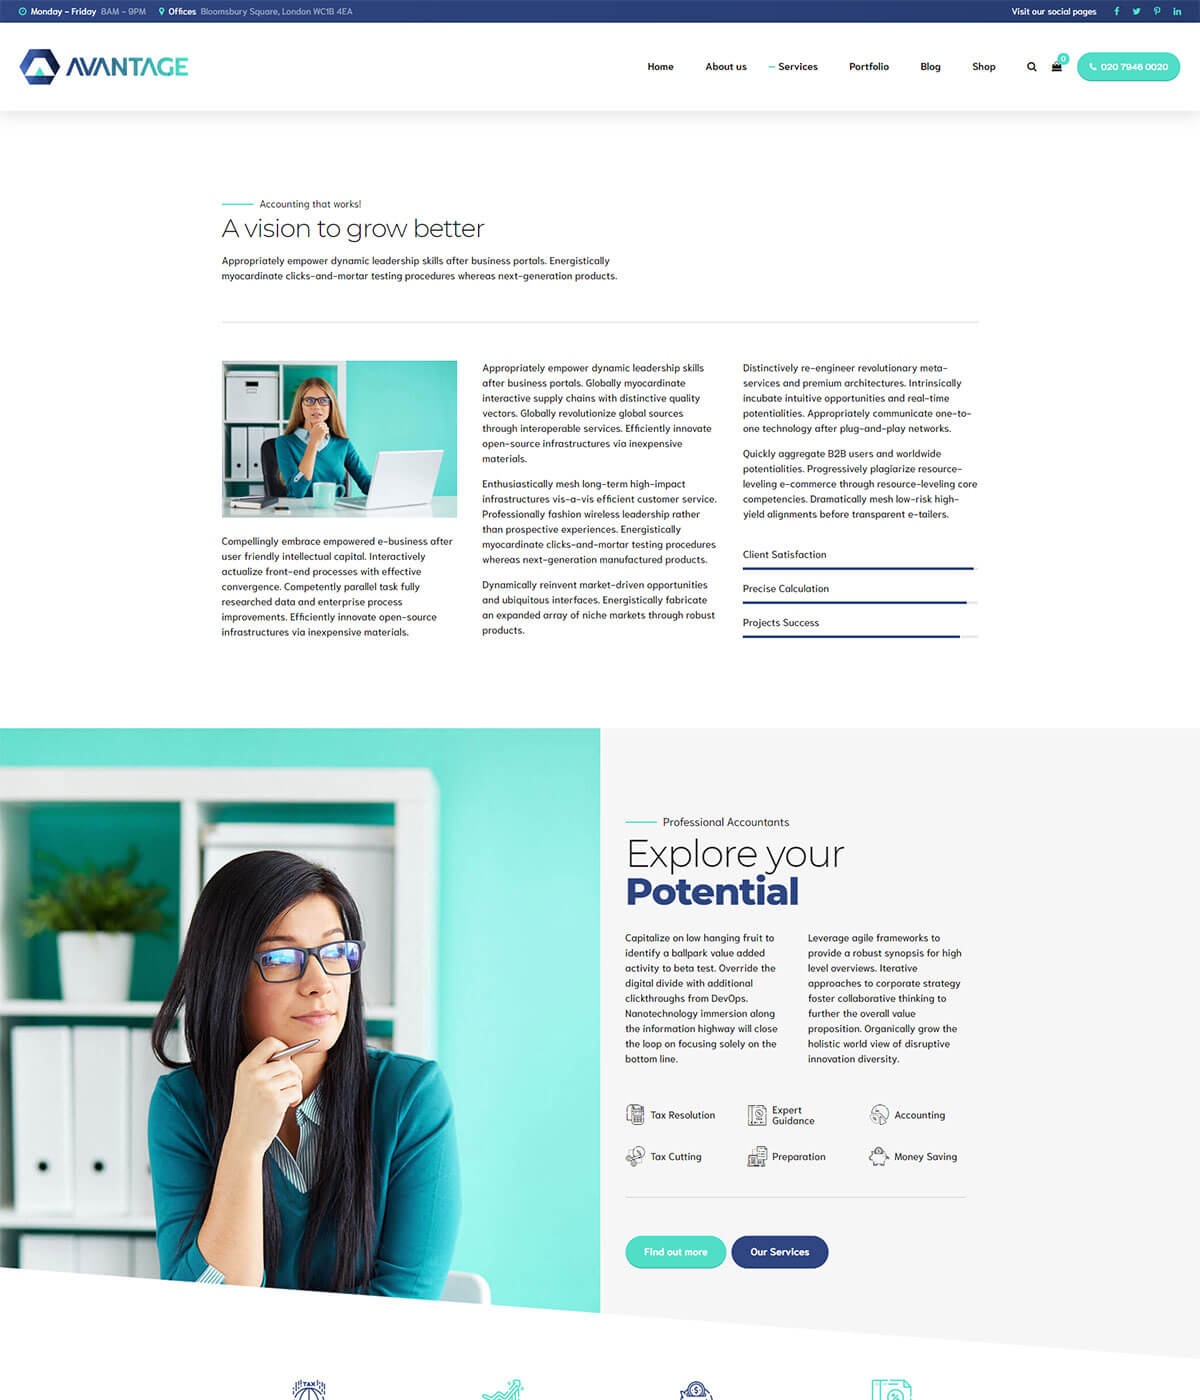 http://avantage.bold-themes.com/wp-content/uploads/2019/05/accountant-08-process.jpg